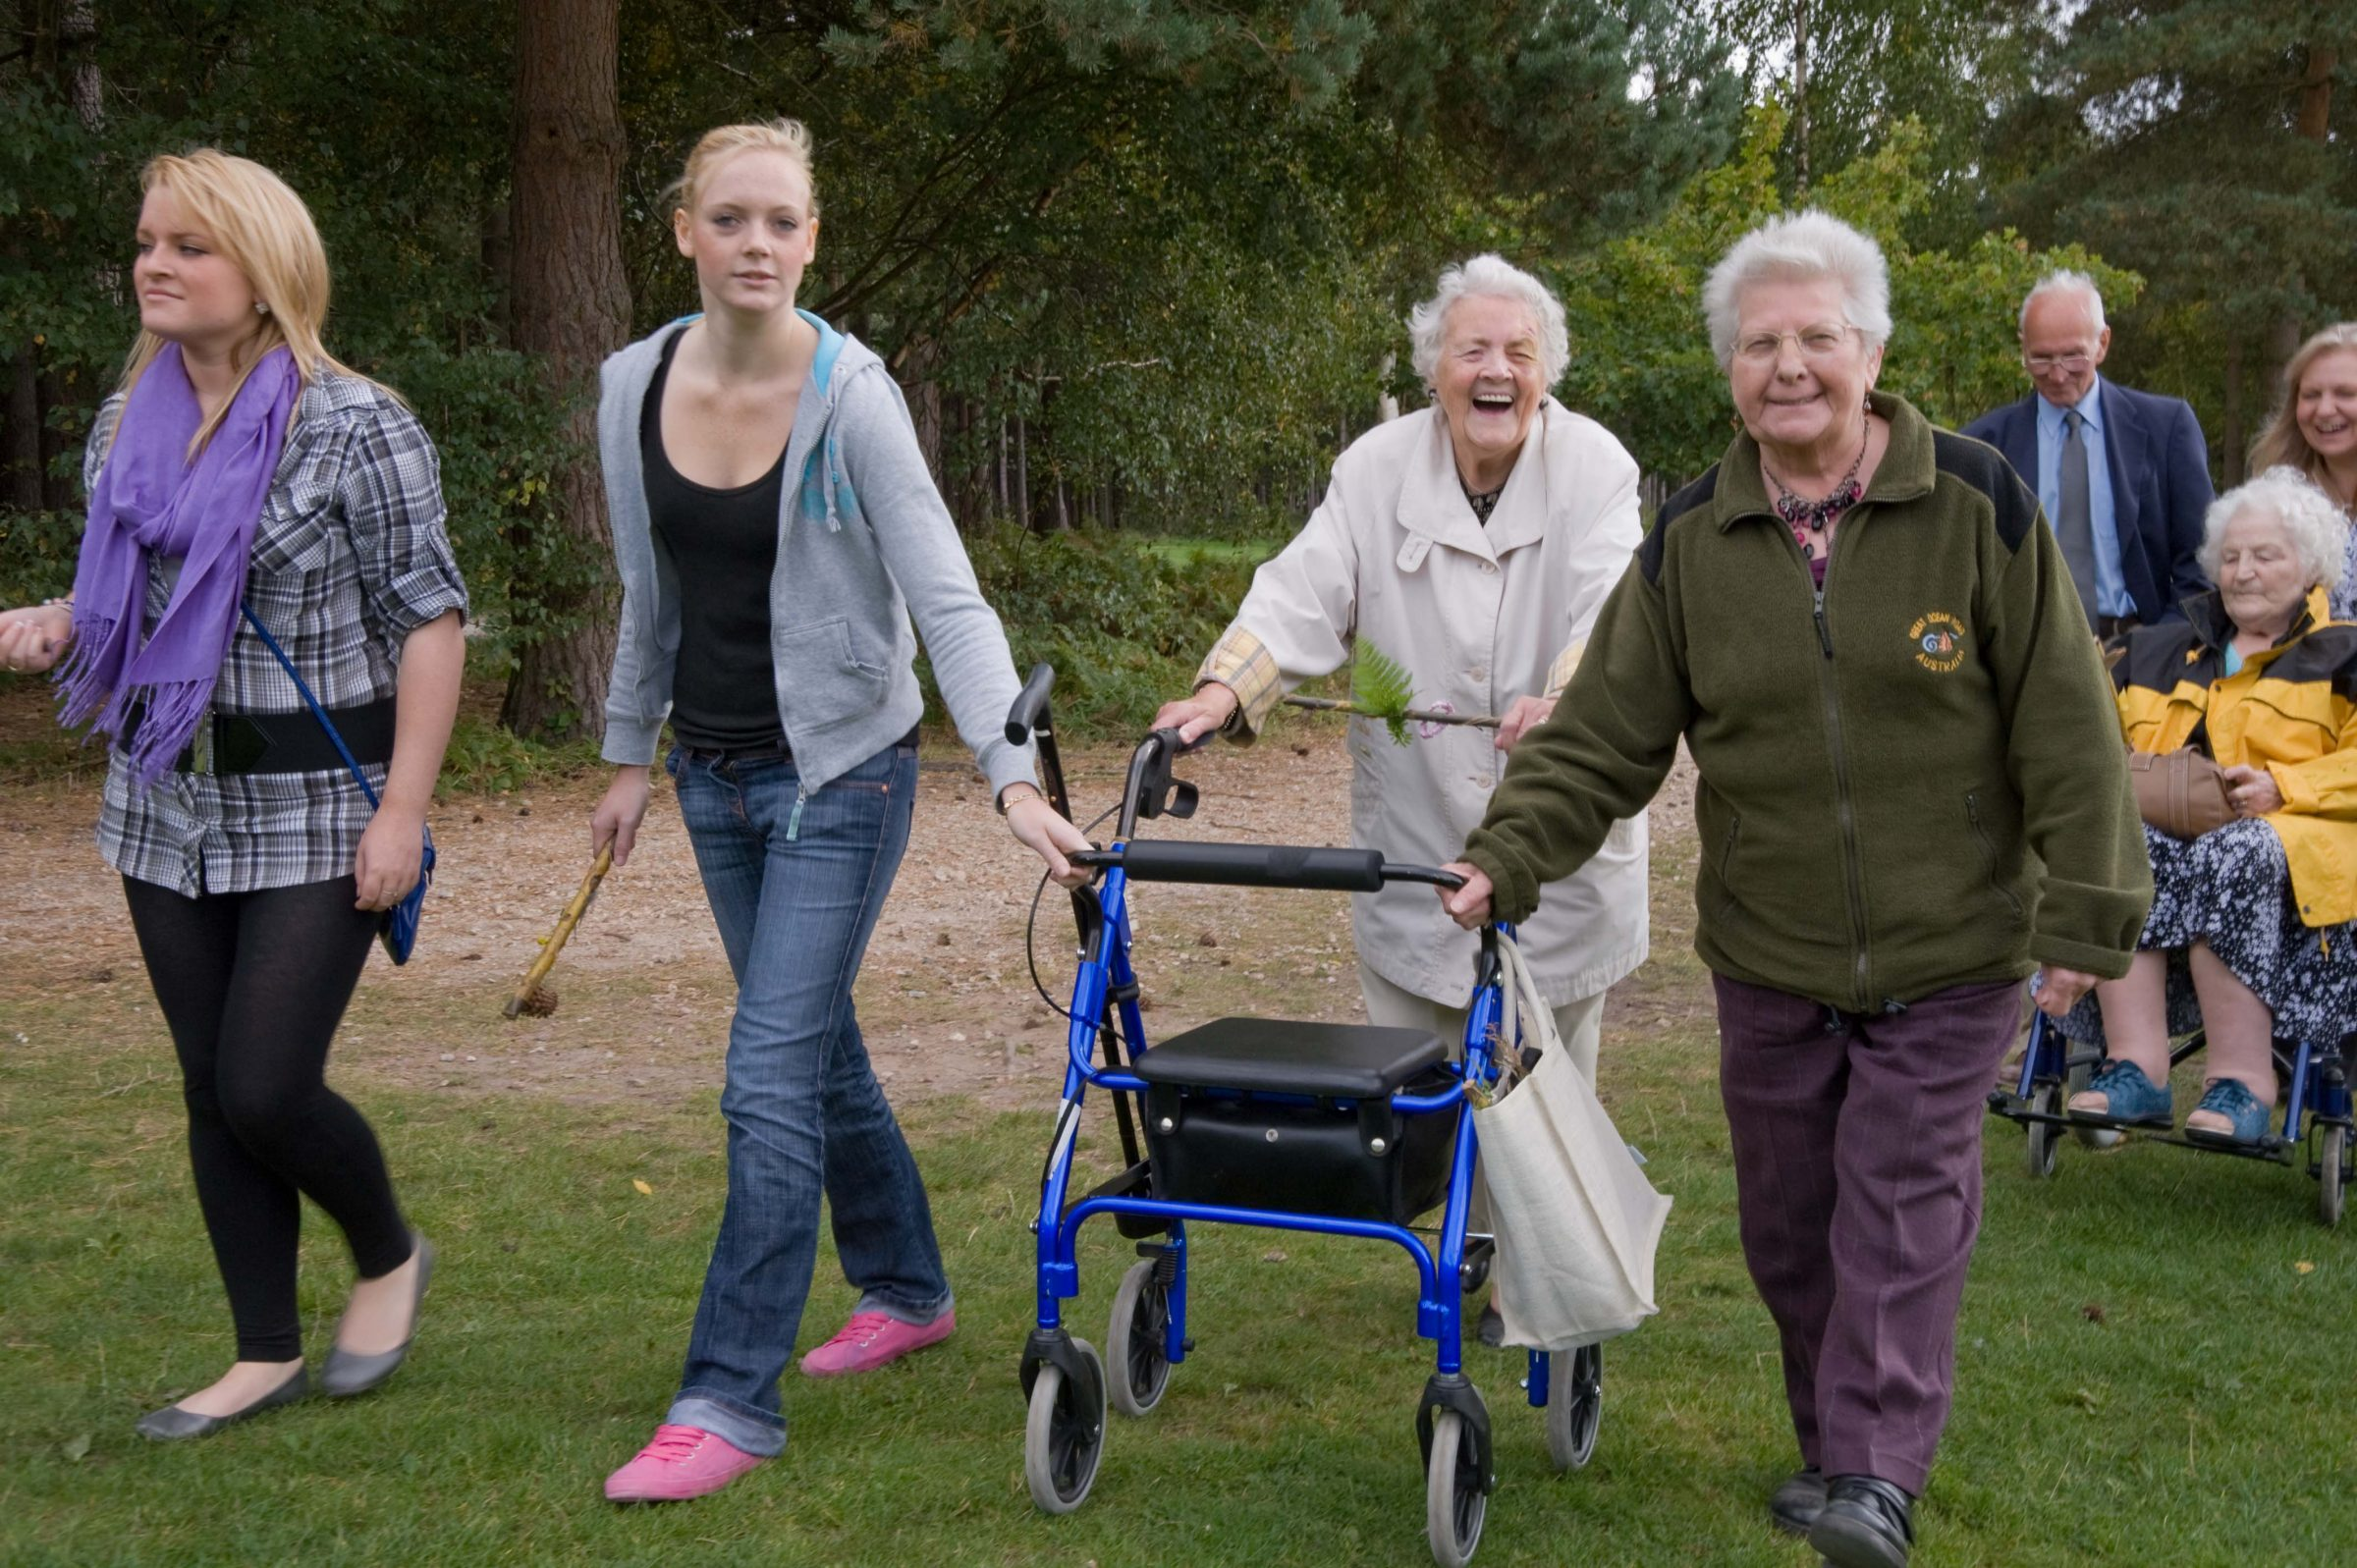 Photo of older and younger people out on a walk